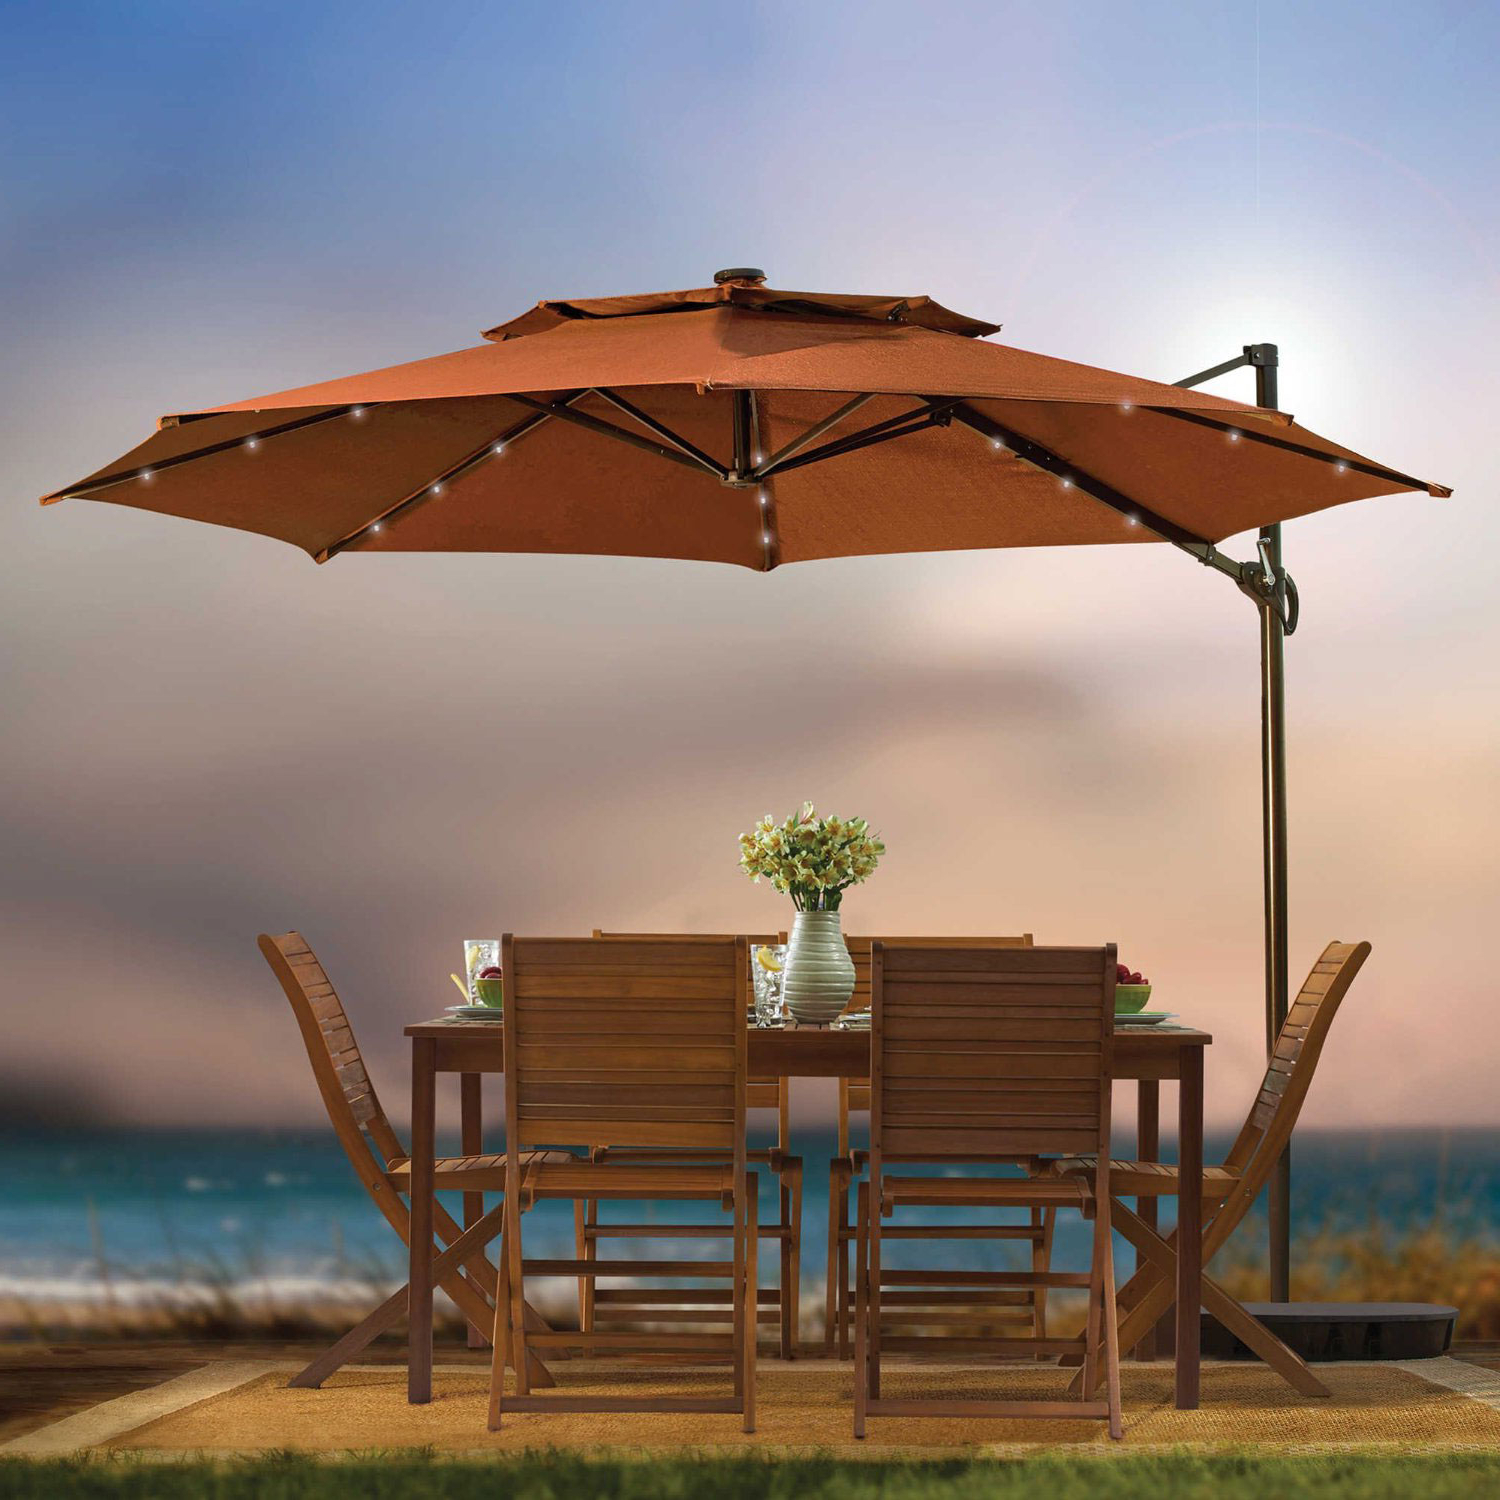 Hurt Market Umbrellas Pertaining To Most Current Best Patio Umbrella – Reviews & Buying Guide (August 2019) (Gallery 17 of 20)